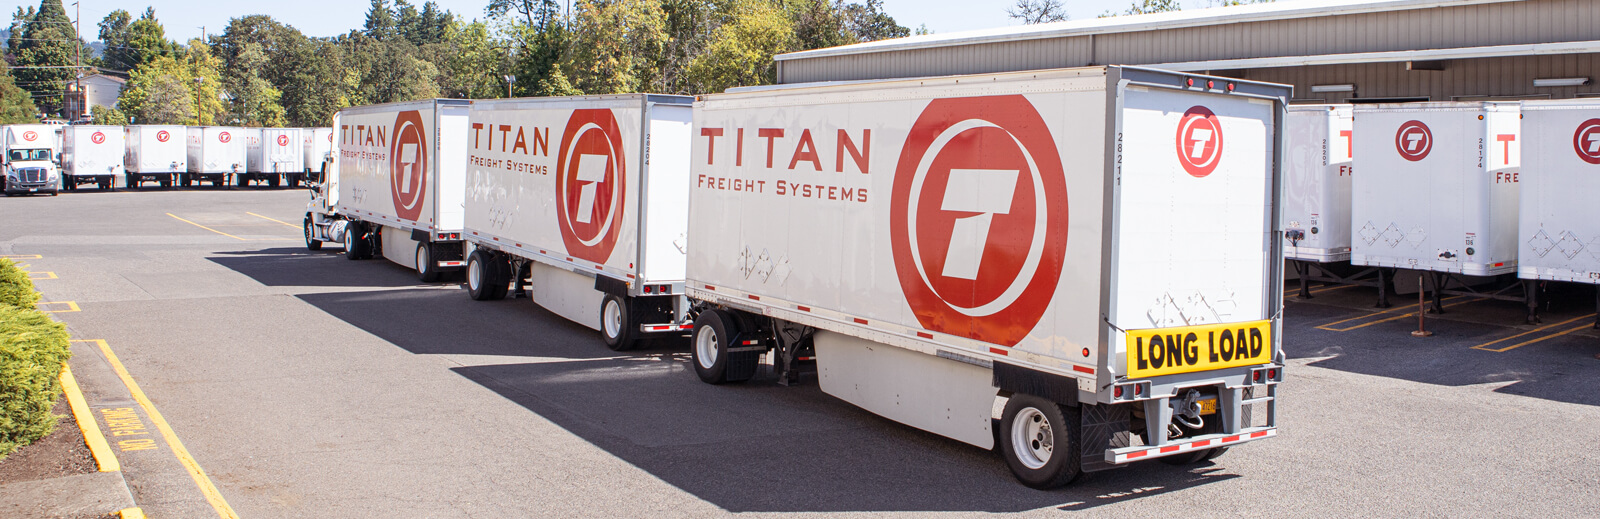 about us titan freight systems inc about us titan freight systems inc